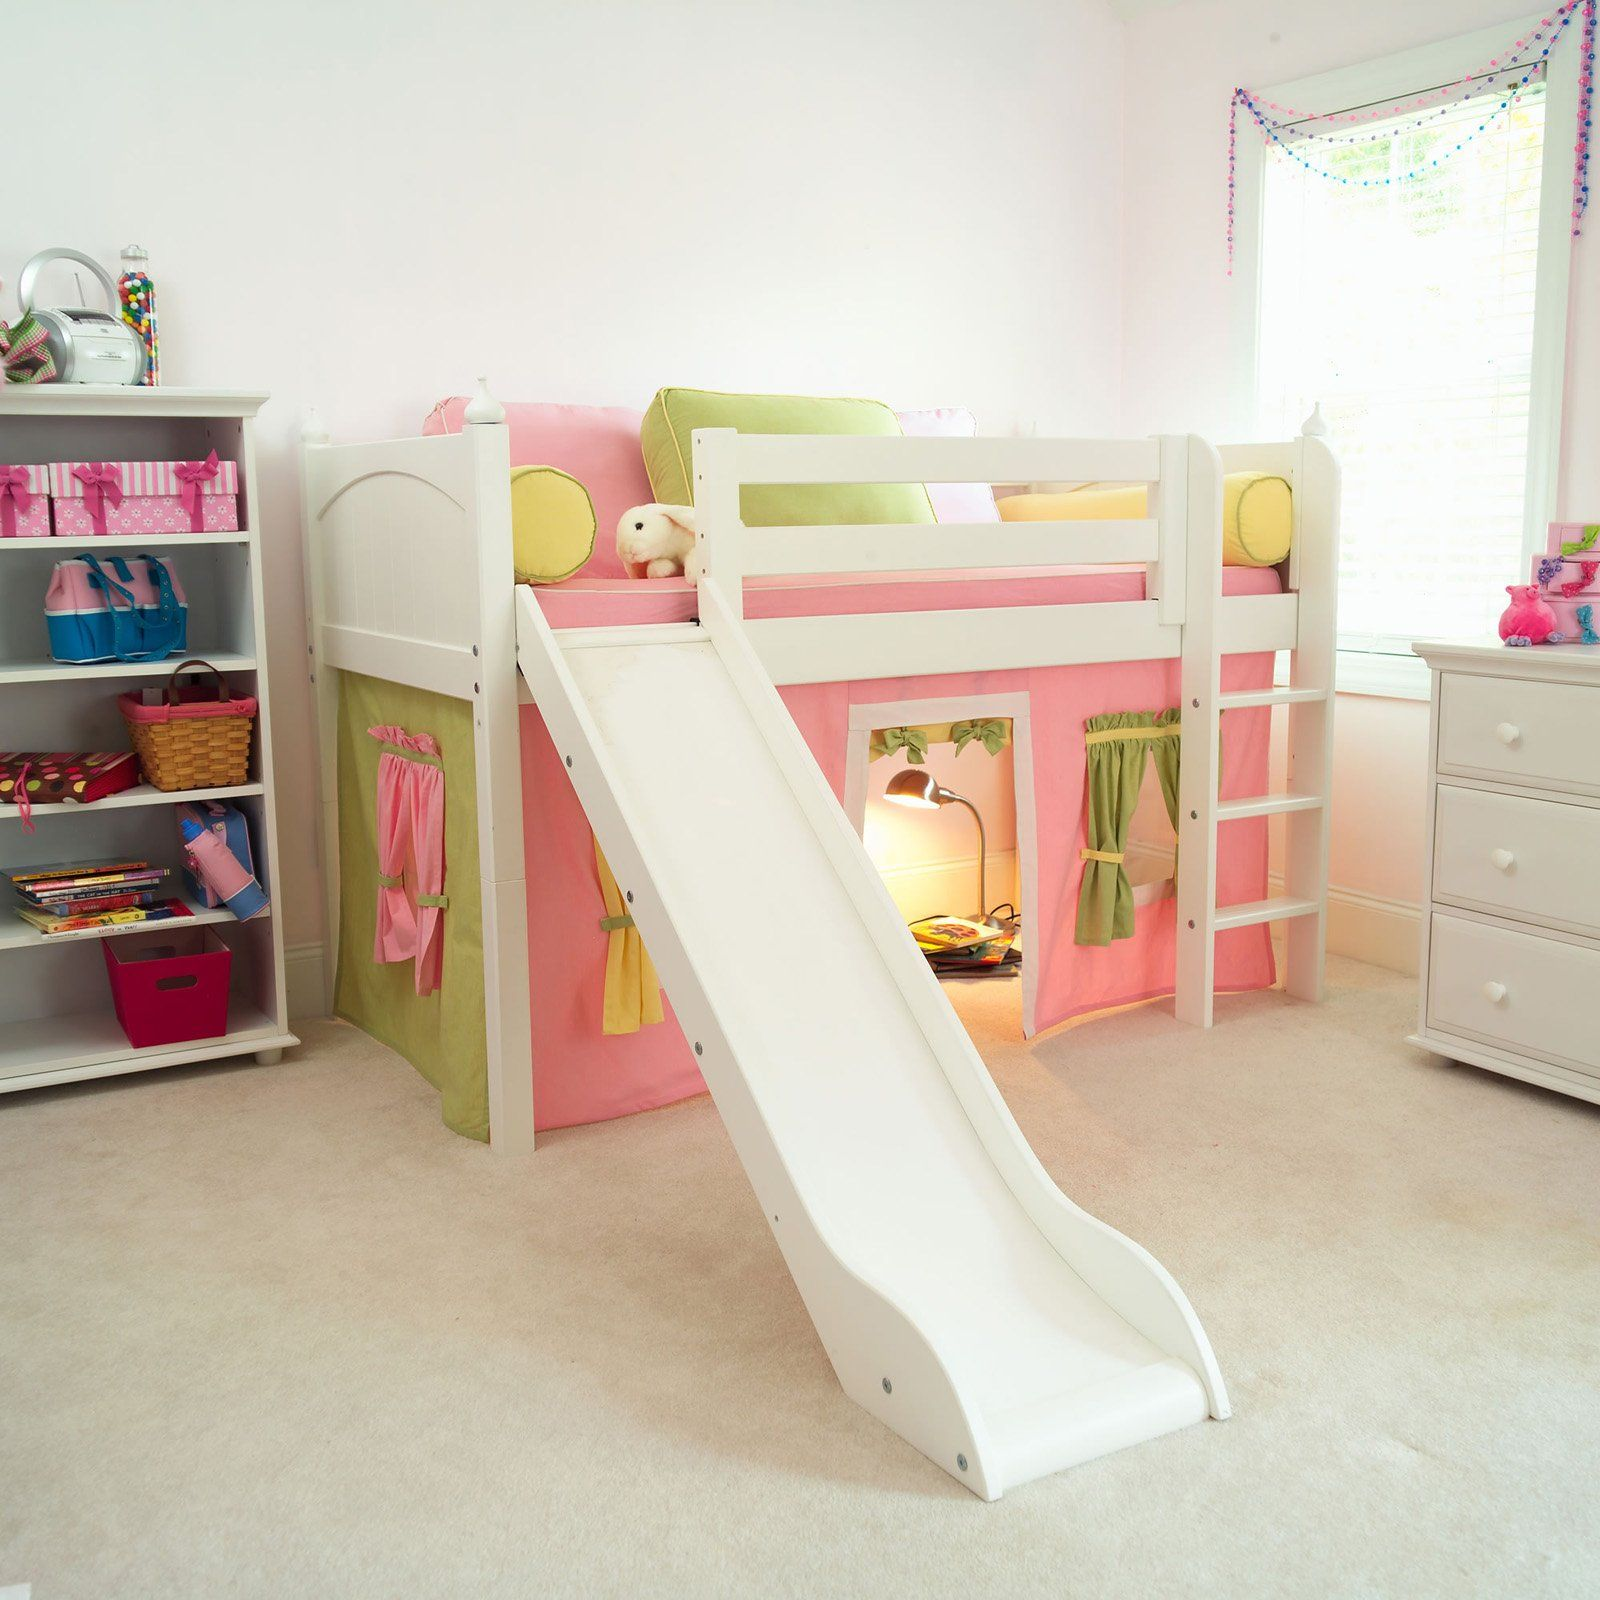 Have to have it Marvelous Girl Tent Low Loft with Slide $1158 99